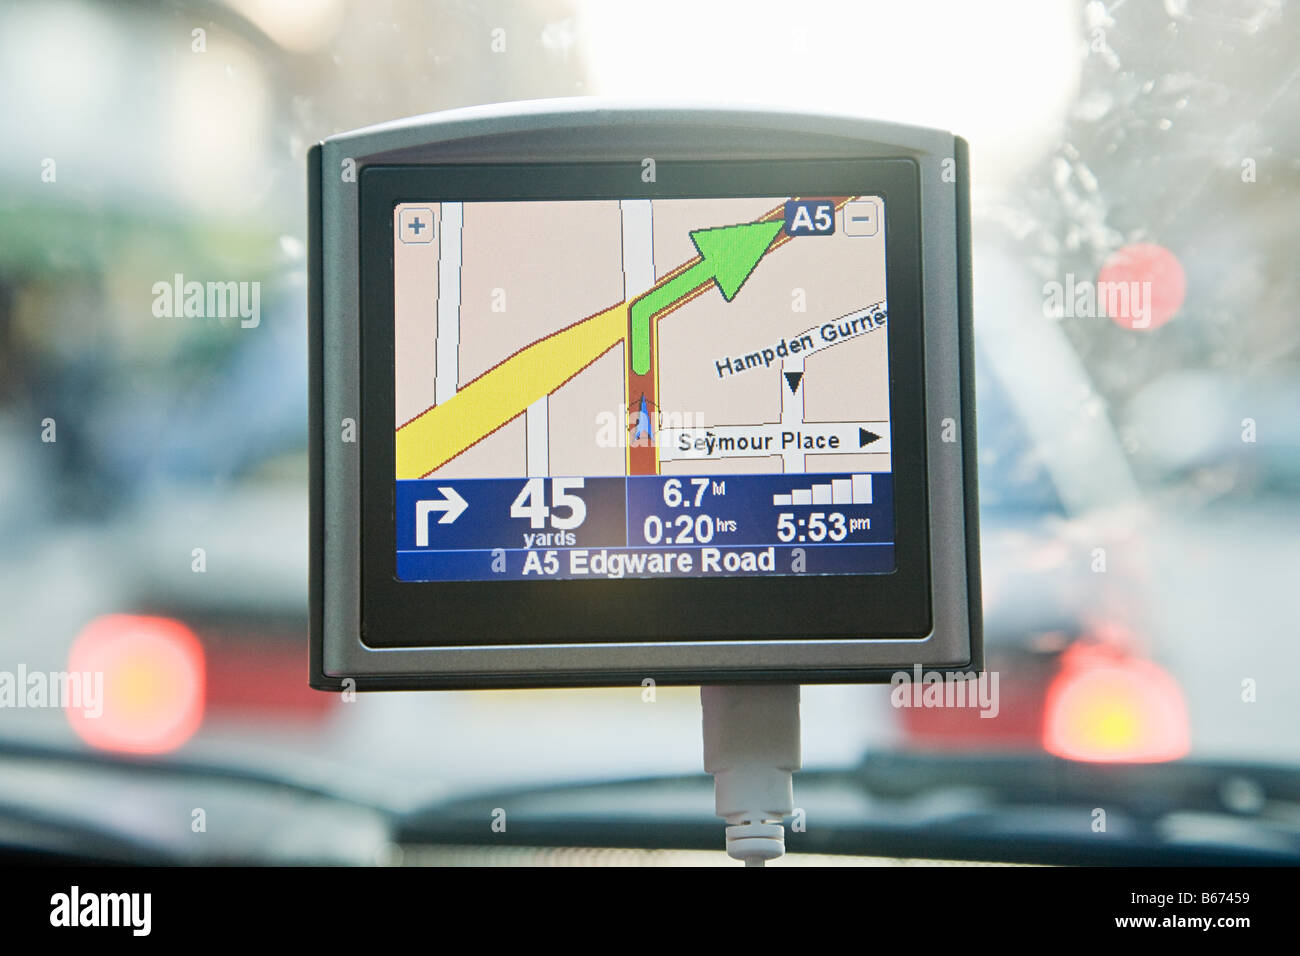 Satellite navigation - Stock Image